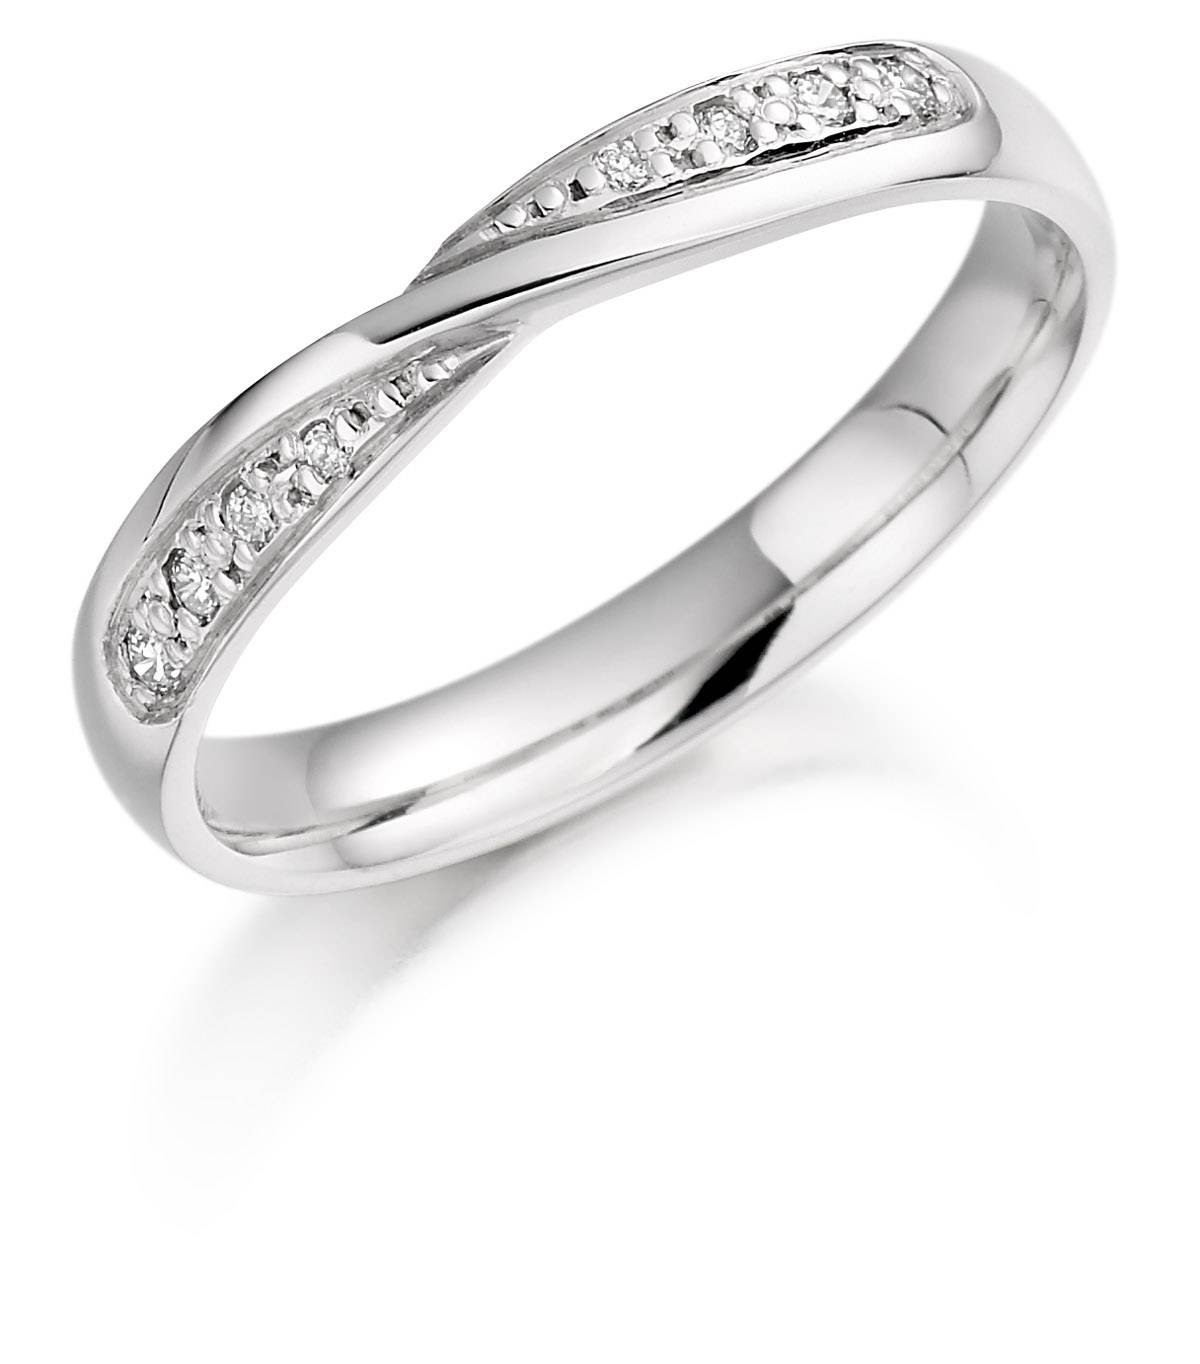 Wedding Bands – Sparkle Diamond Wedding Band Inside Twisted Wedding Bands (View 11 of 15)